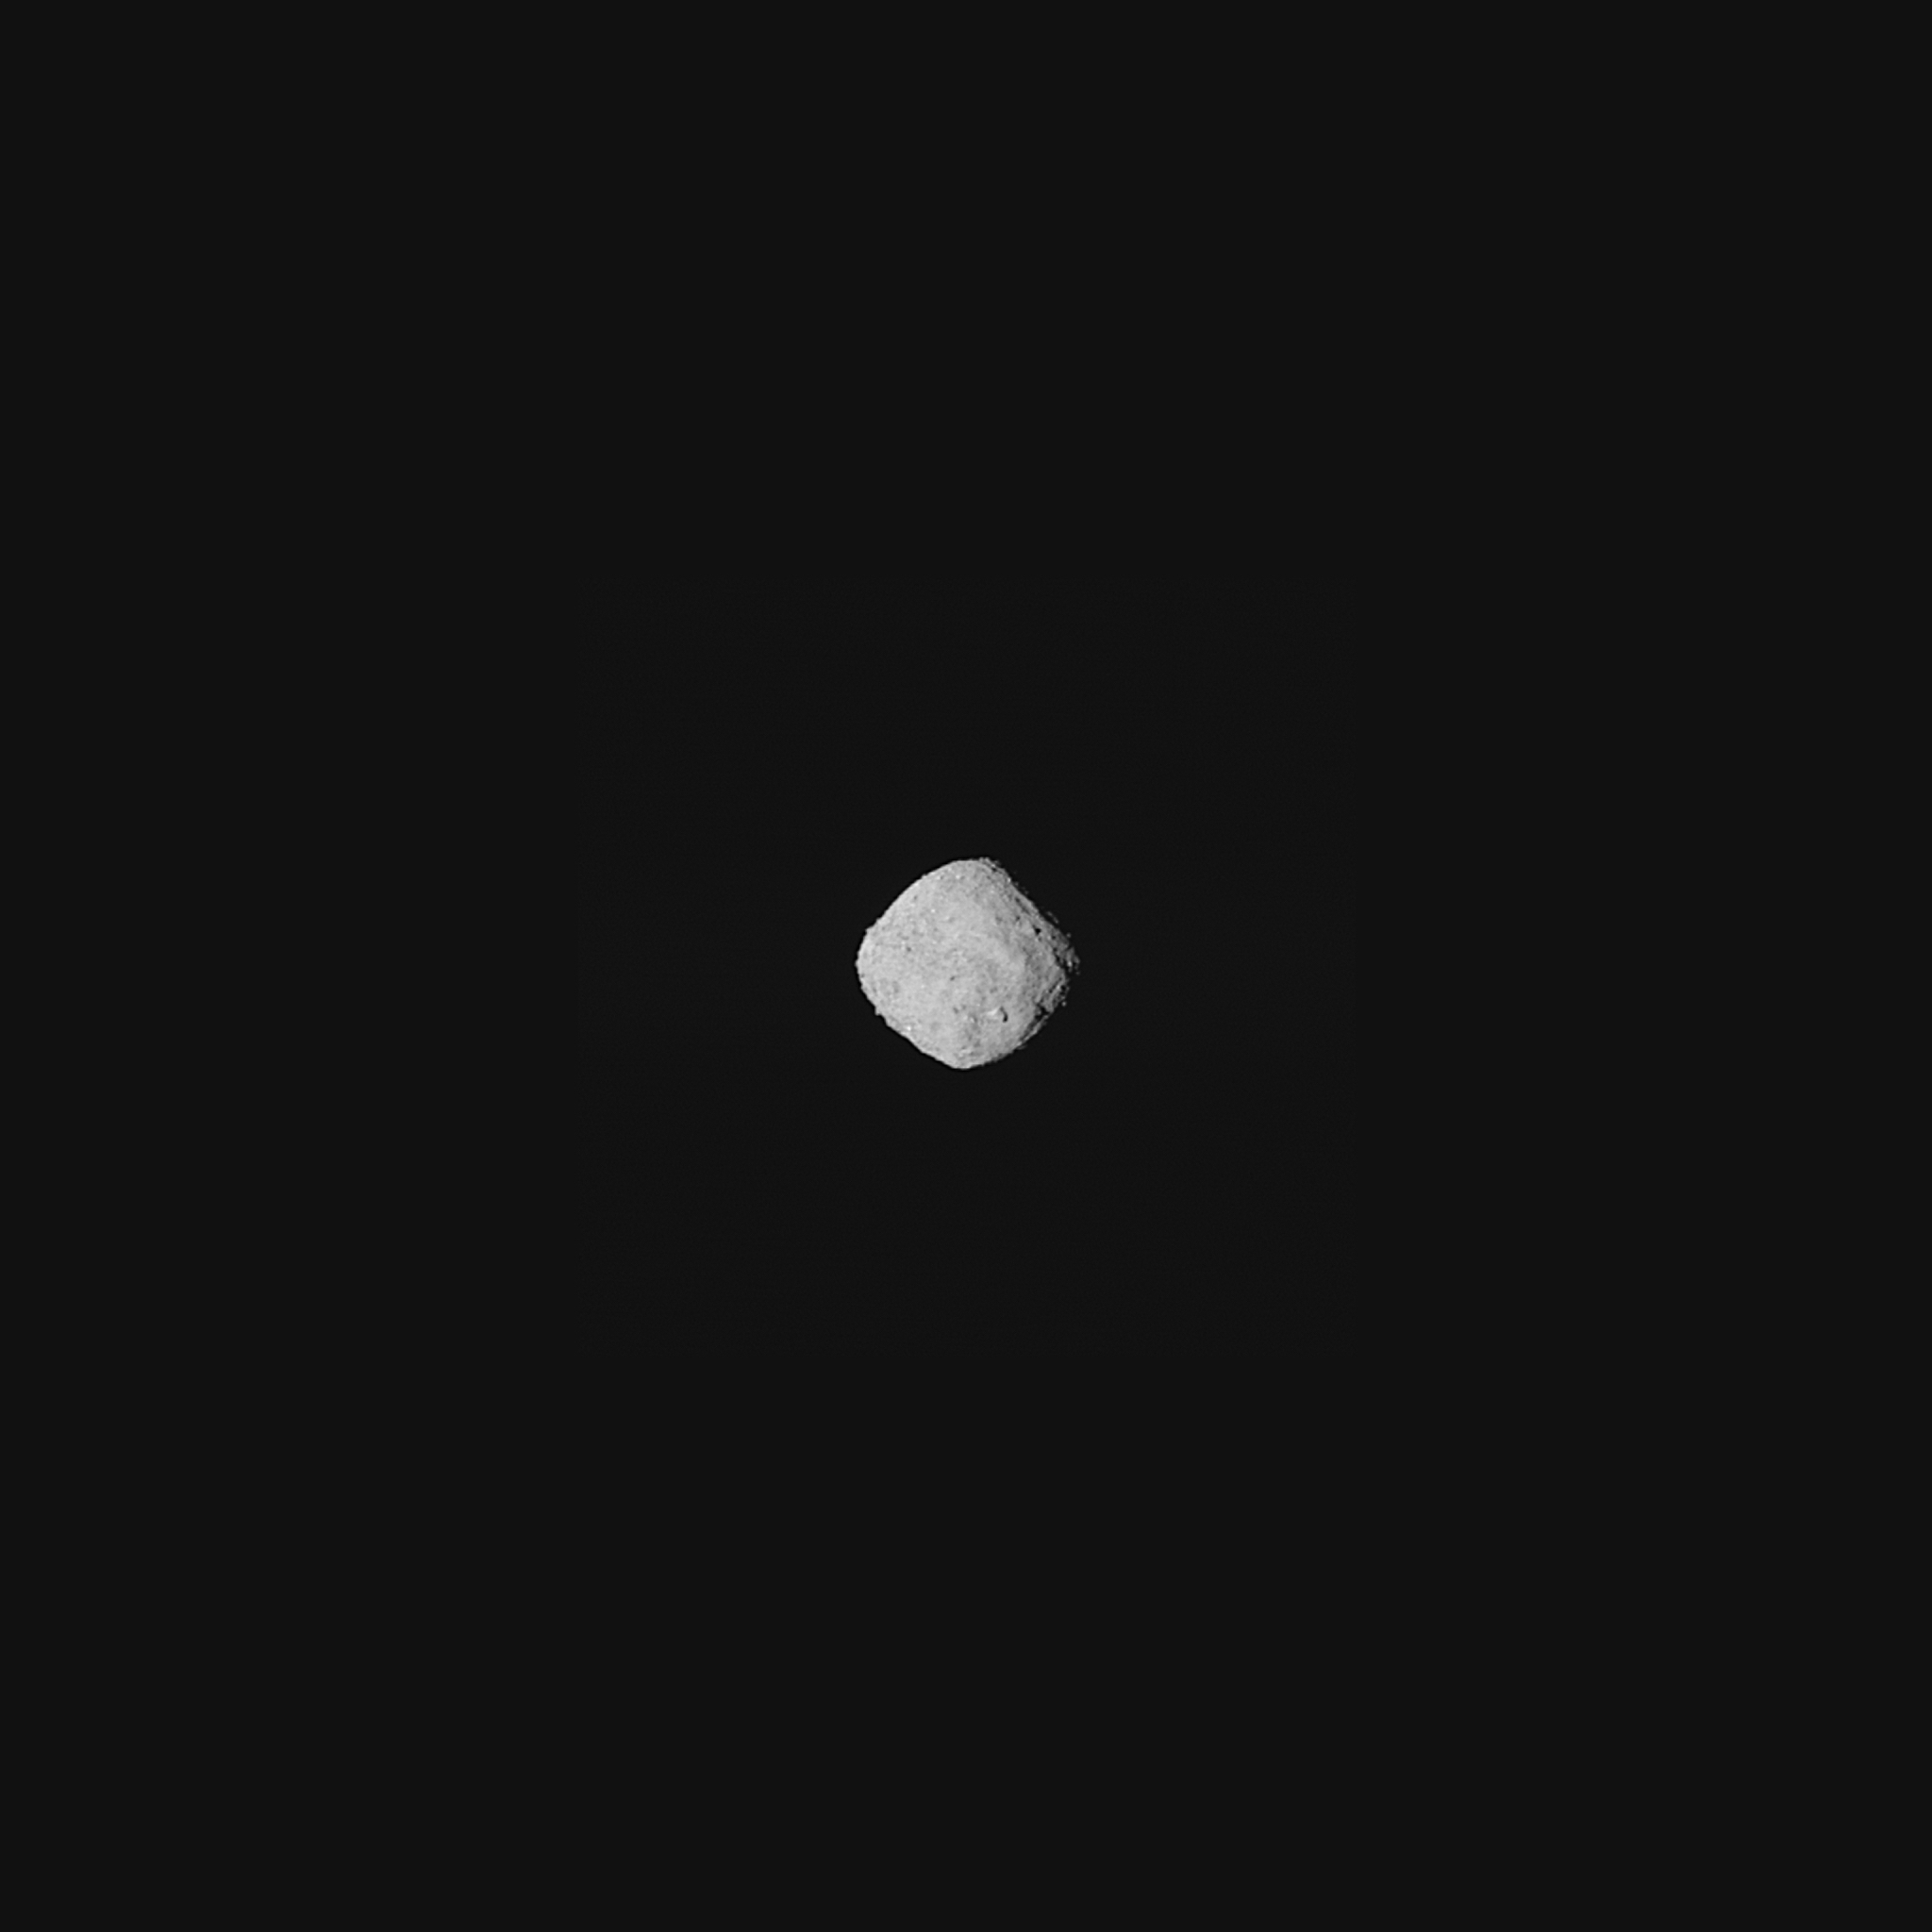 https://www.nasa.gov/sites/default/files/thumbnails/image/20181029t1019ut_bennu.jpeg